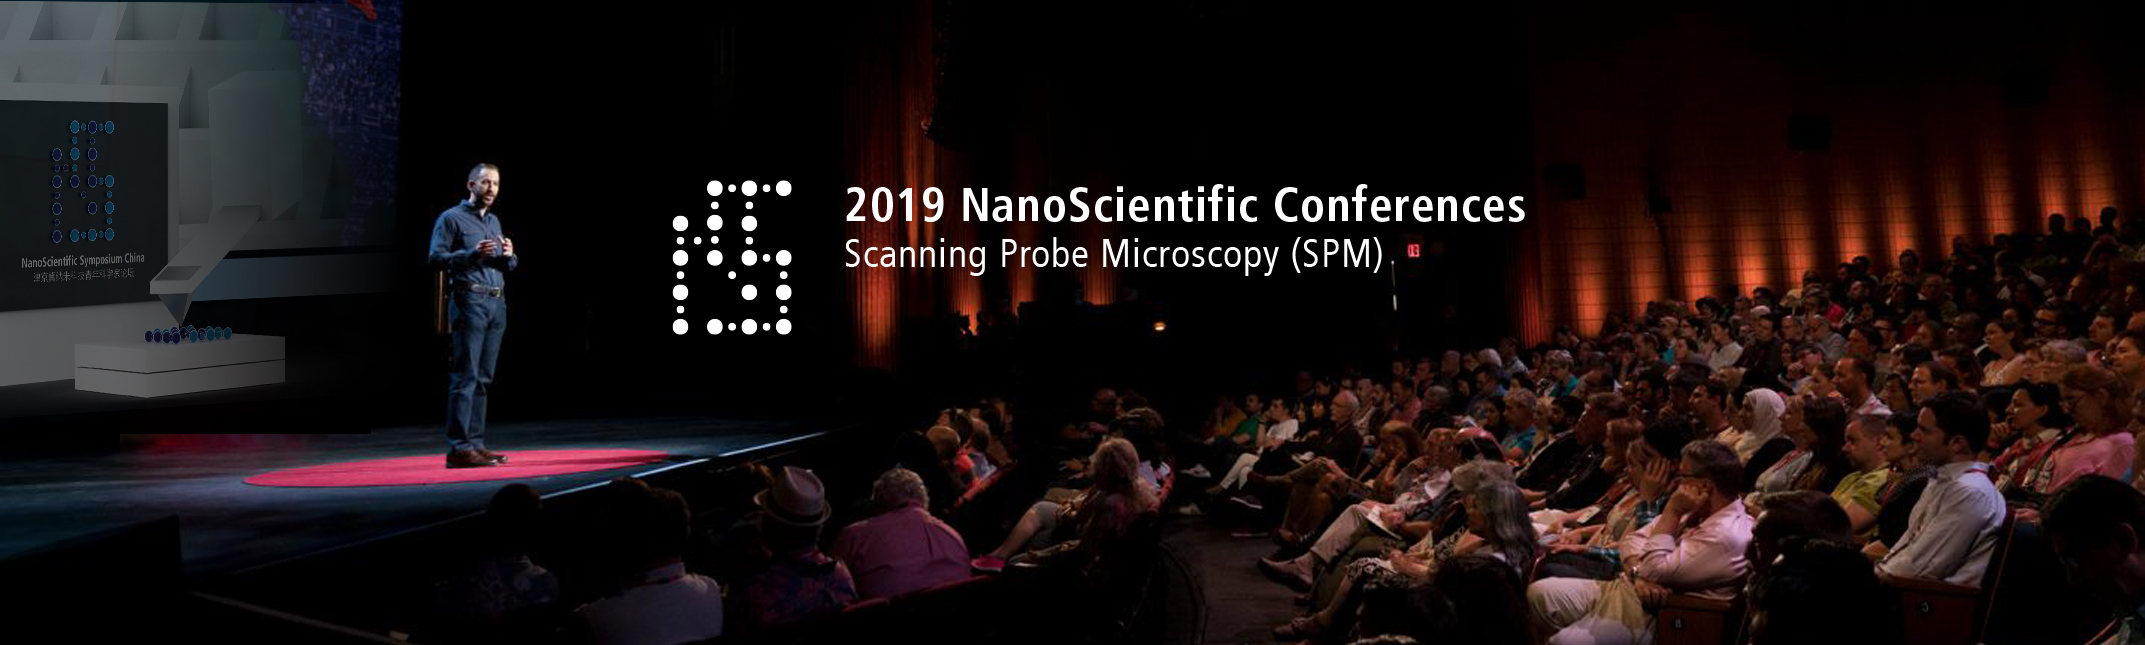 2019 NSConference